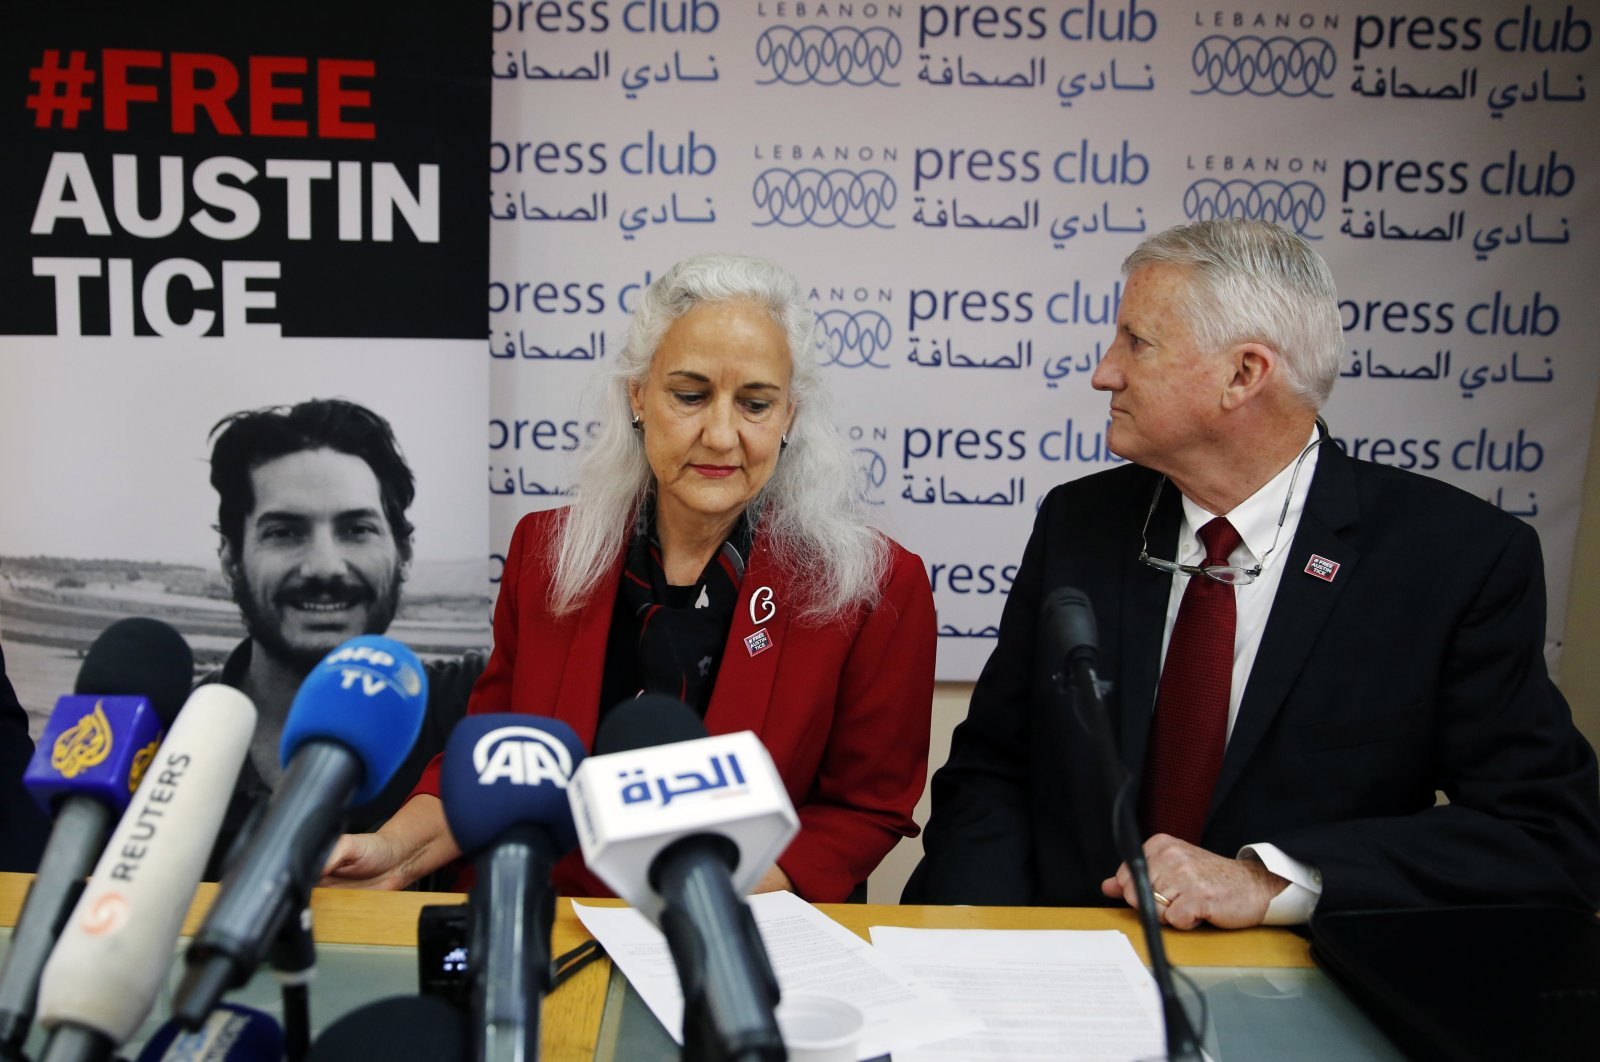 Marc and Debra Tice, the parents of Austin Tice, who is missing in Syria, speak during a press conference, at the Press Club, in Beirut, Lebanon, Dec. 4, 2018. (AP Photo)